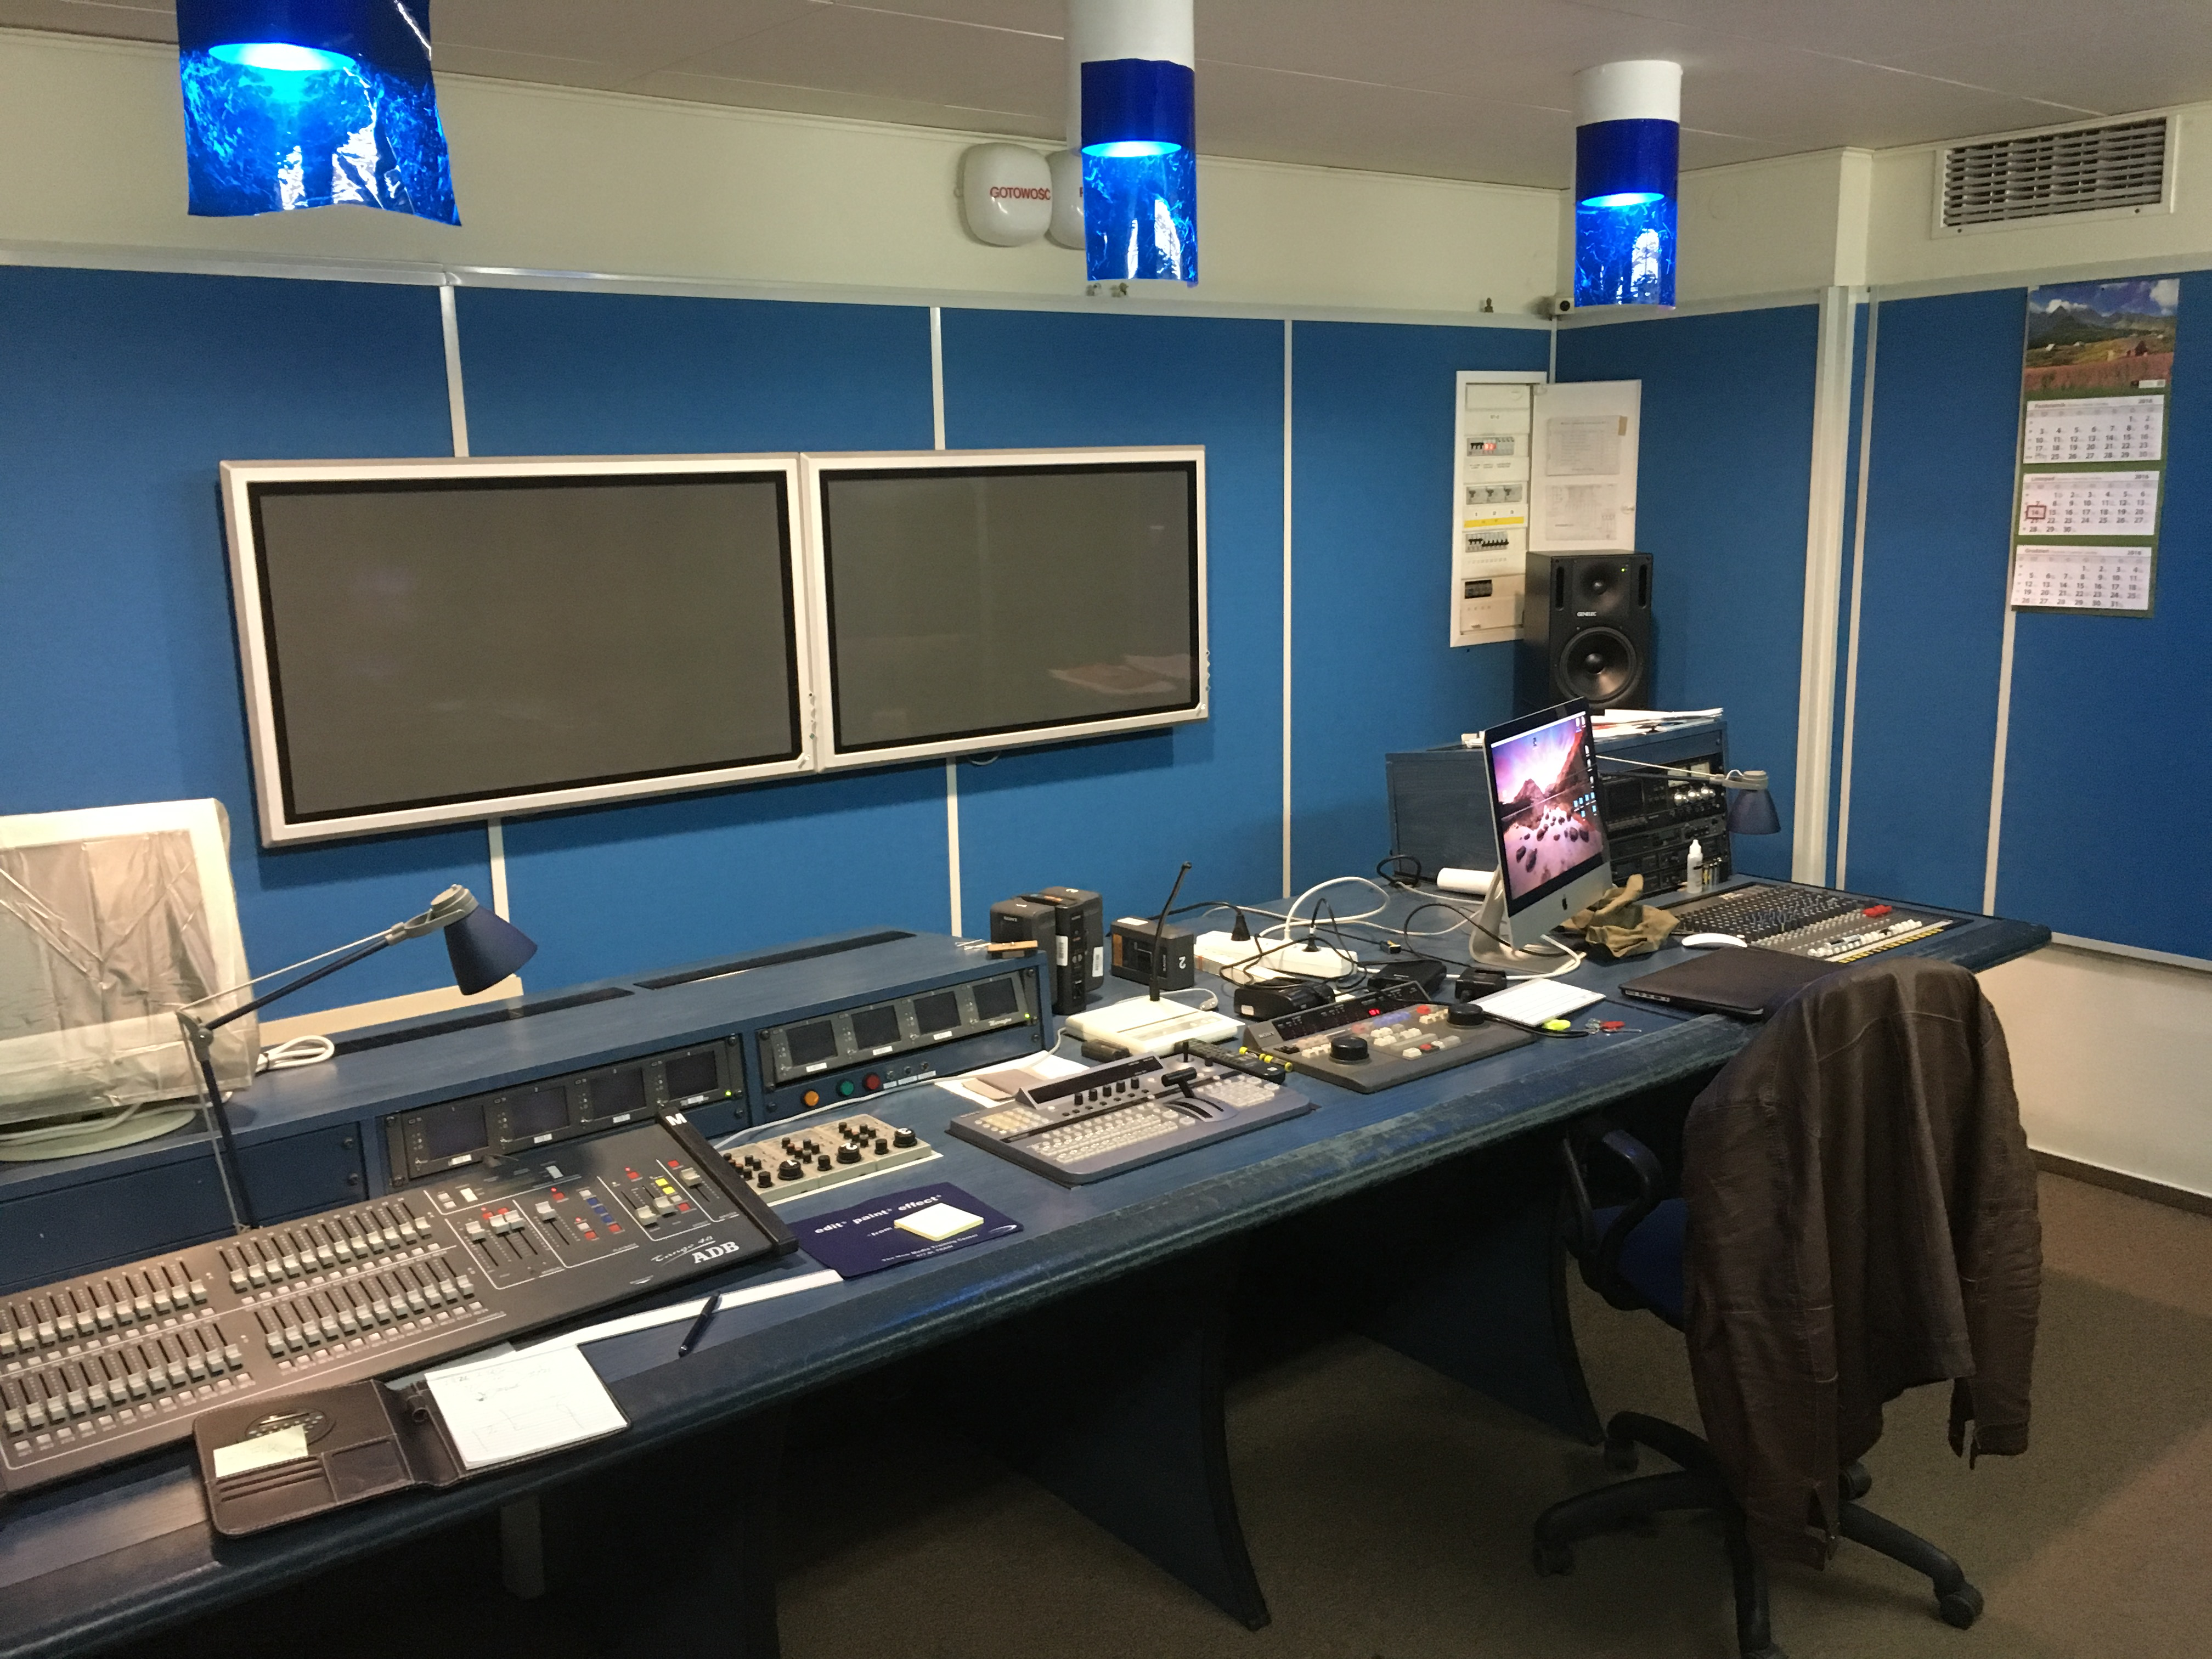 University of Warsaw invests in HD technology selecting PBT